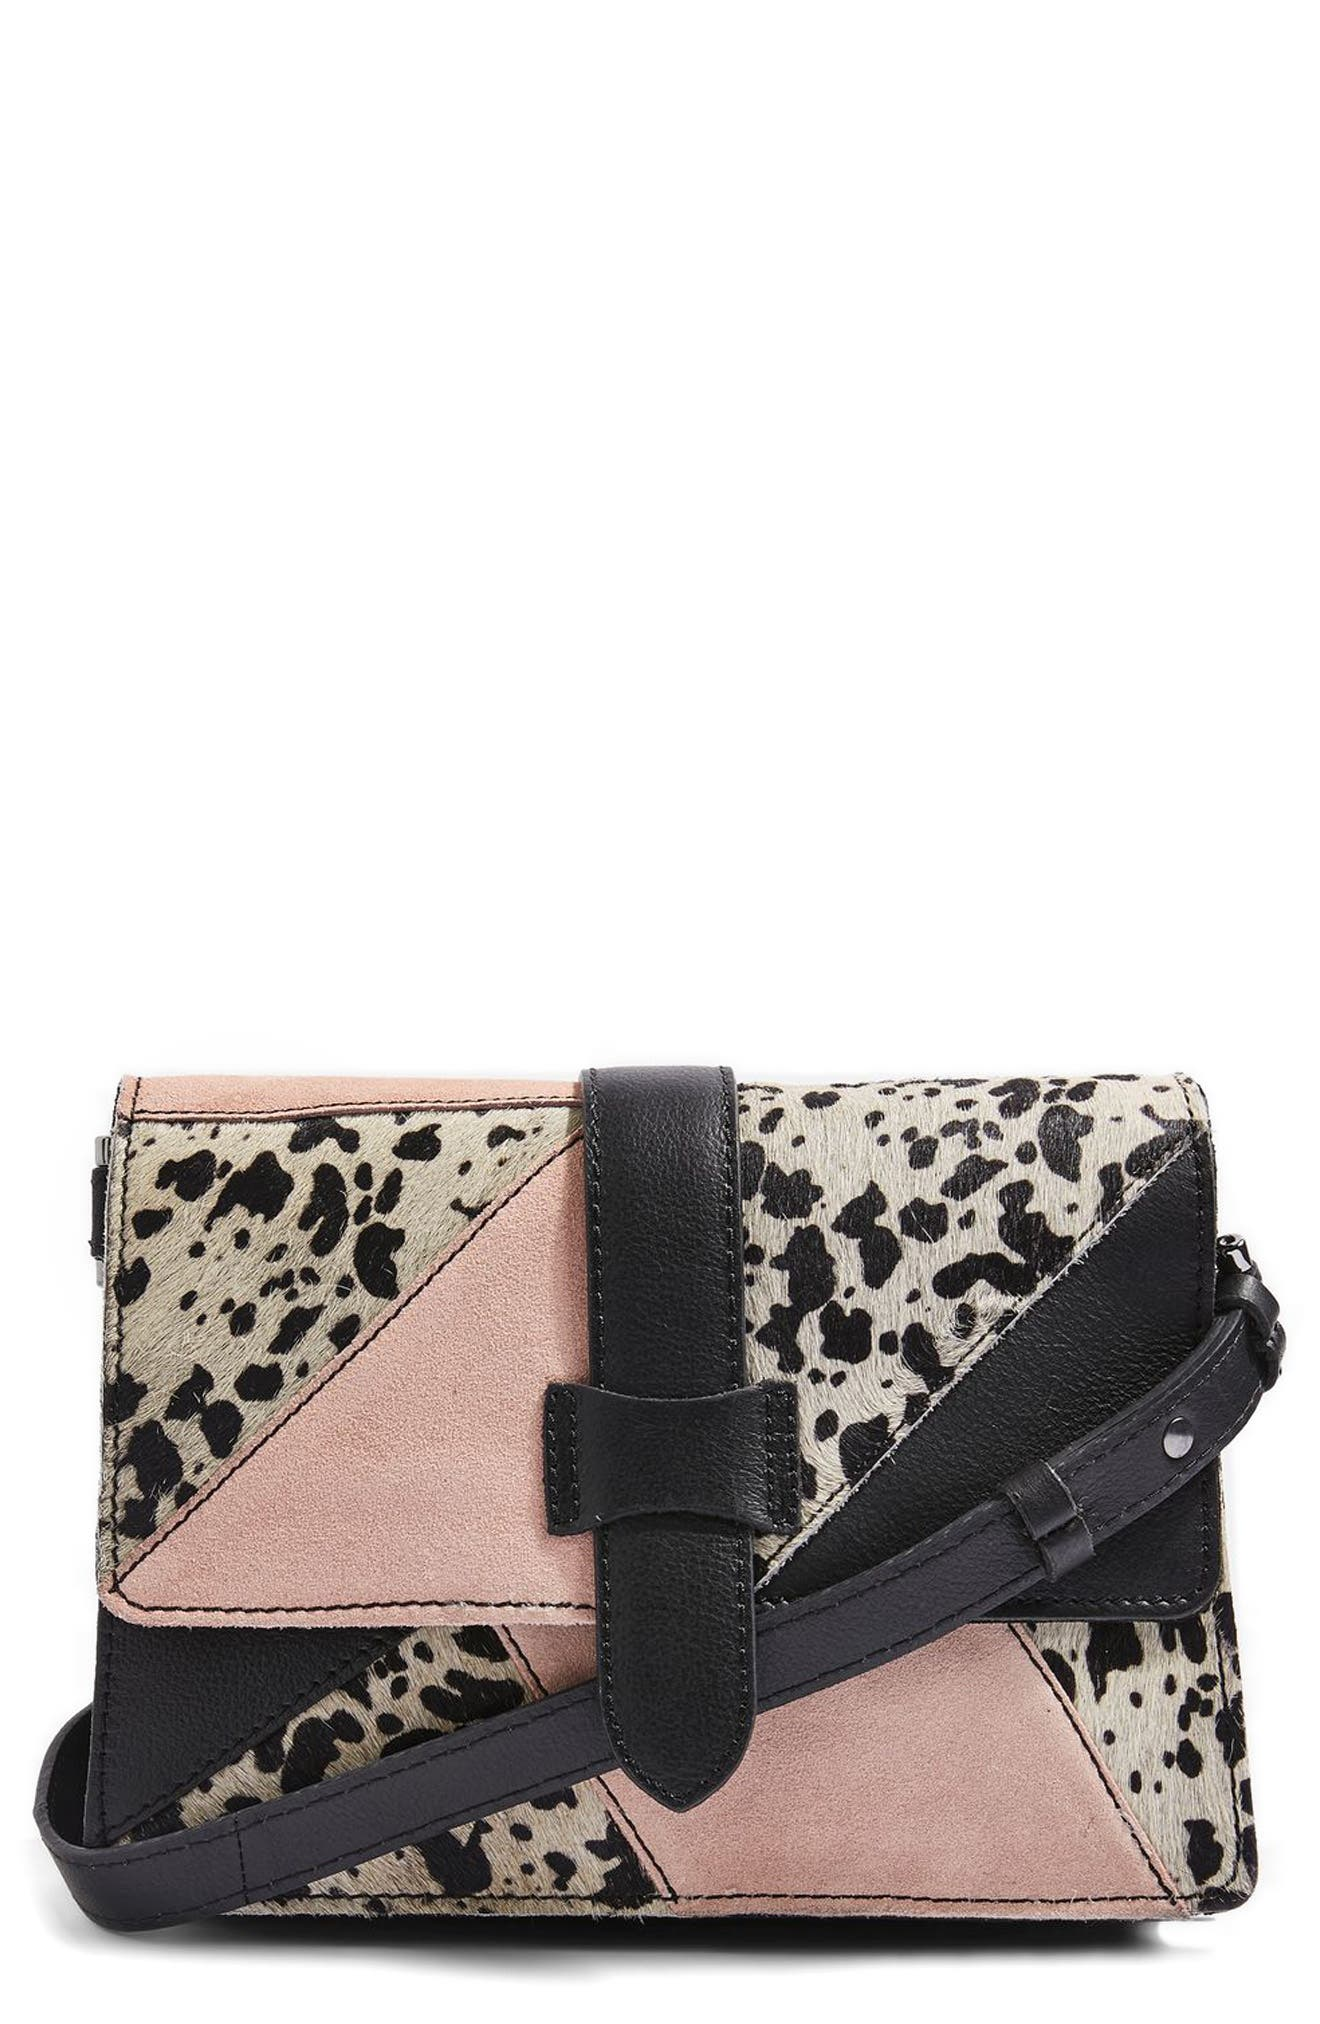 Topshop Leather & Genuine Calf Hair Patchwork Crossbody Bag